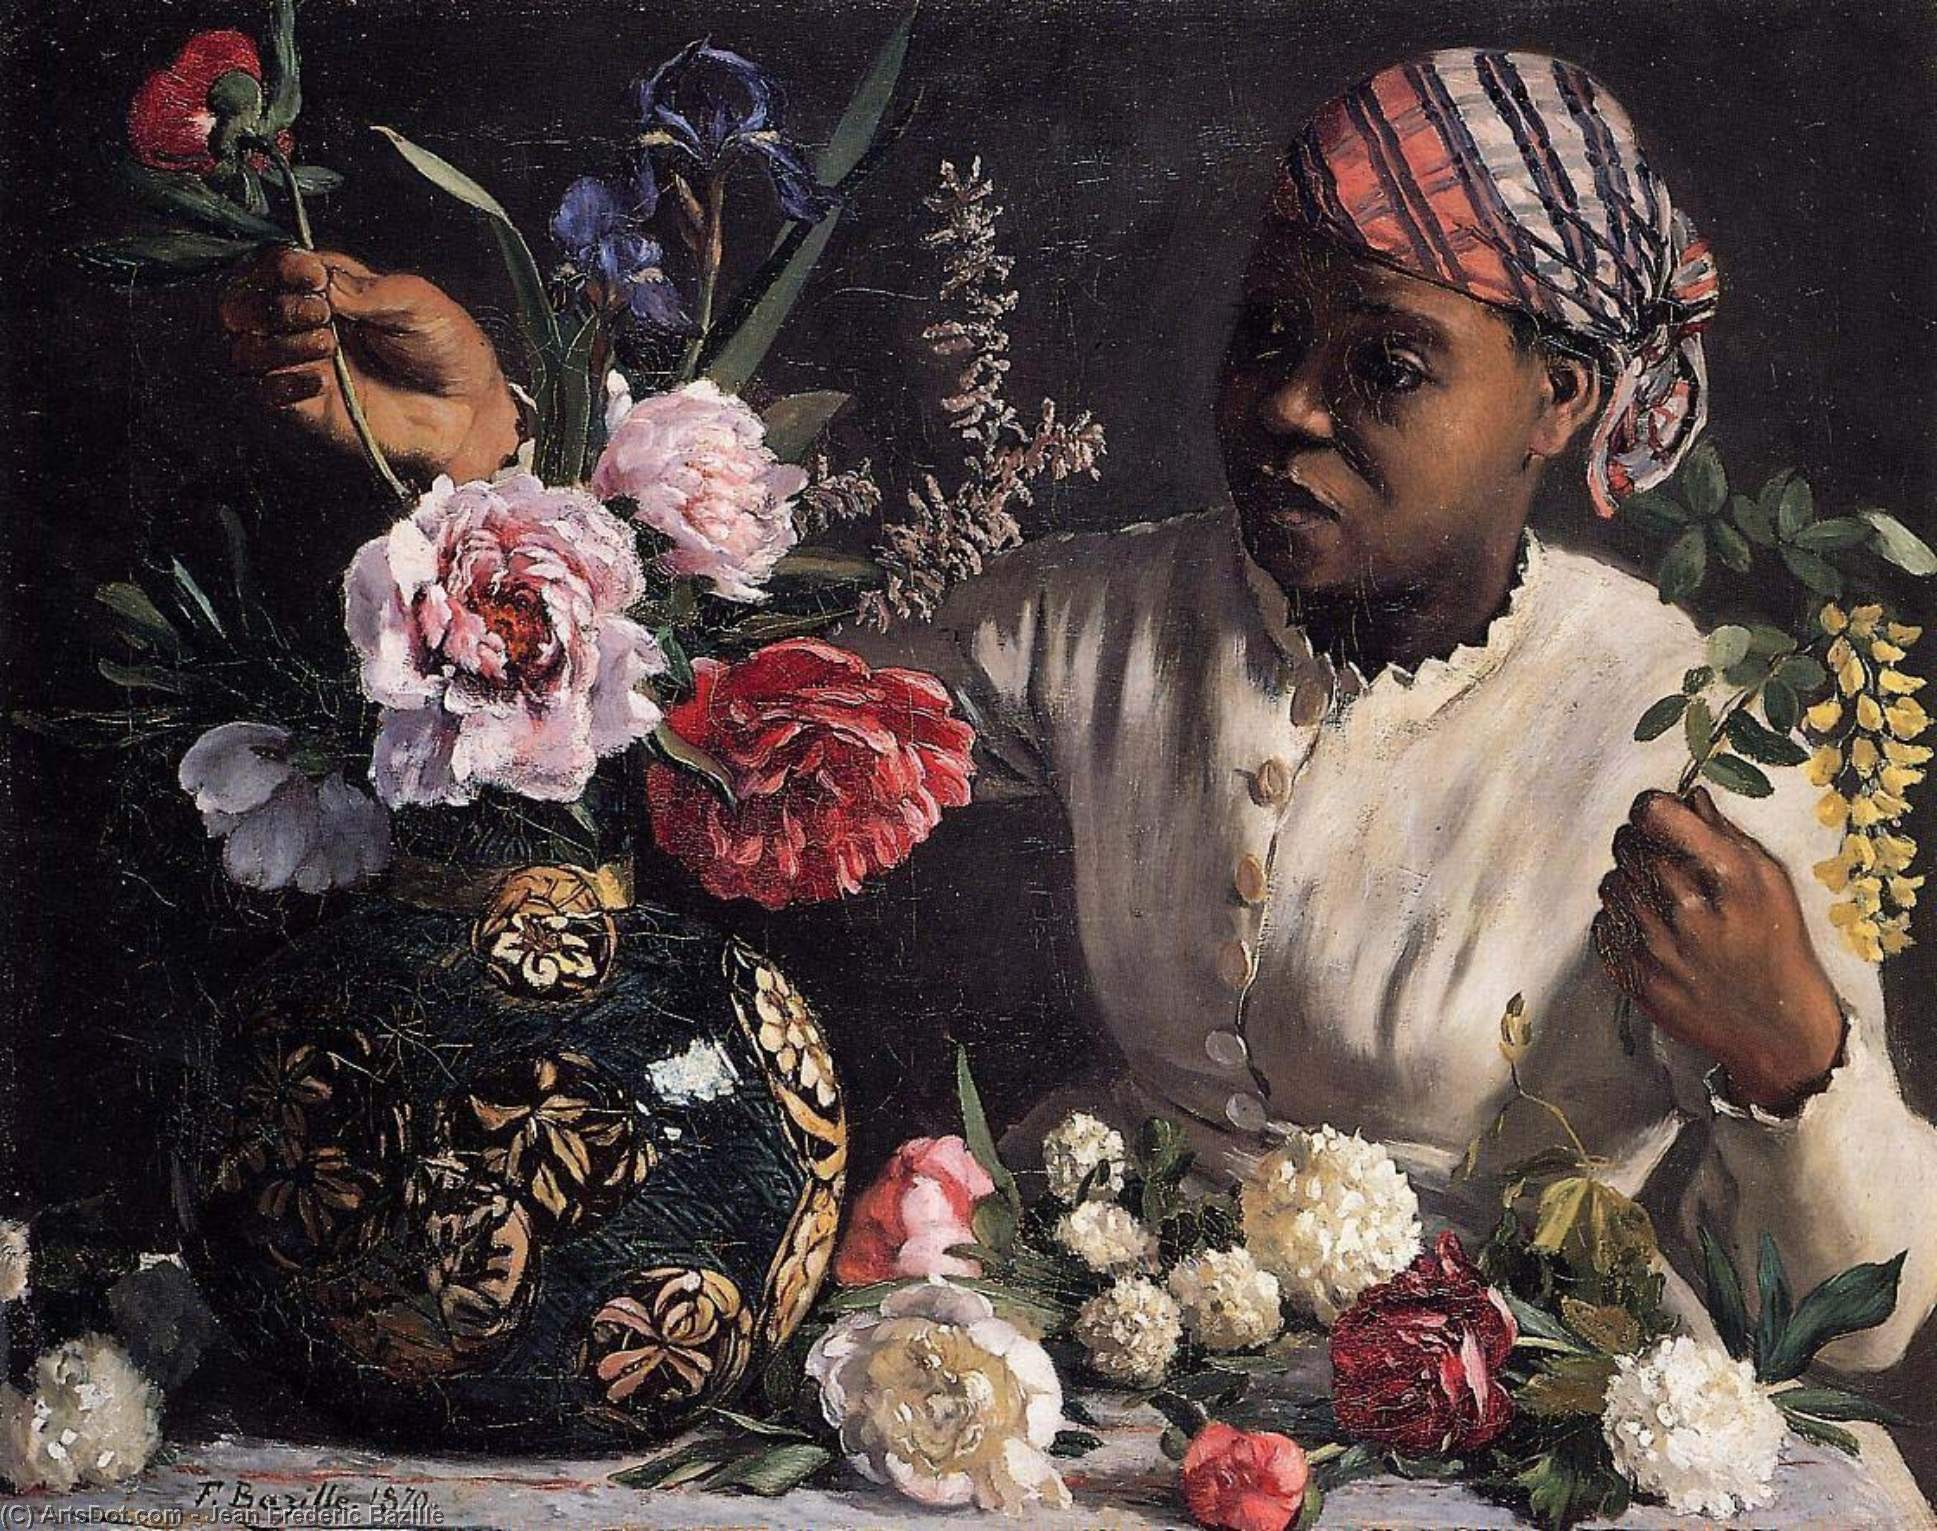 Wikioo.org - The Encyclopedia of Fine Arts - Painting, Artwork by Jean Frederic Bazille - Negress with Peonies